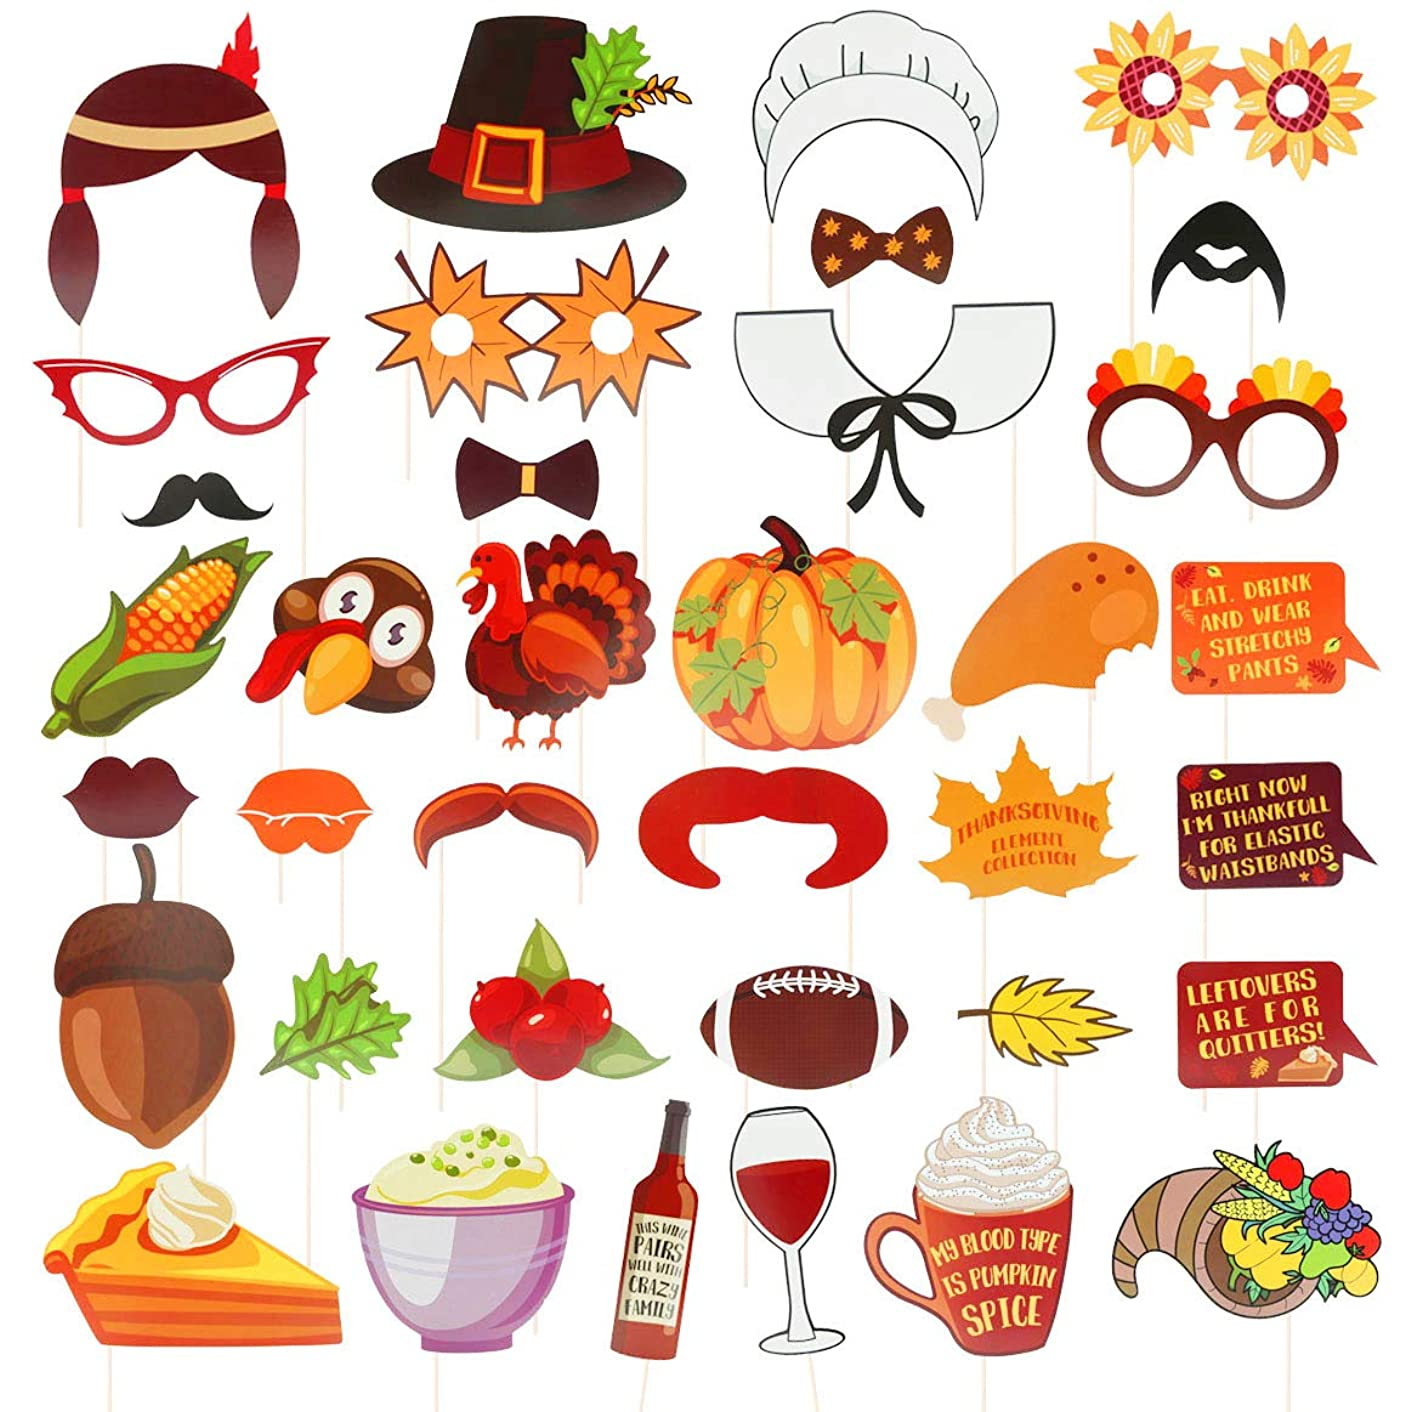 Thanksgiving Day Photo Booth Props 36pcs Colorful Party Favor Decorations Selfie Photobooth Dress-up Accessories Supplies for Festival Holiday Turkey Creative